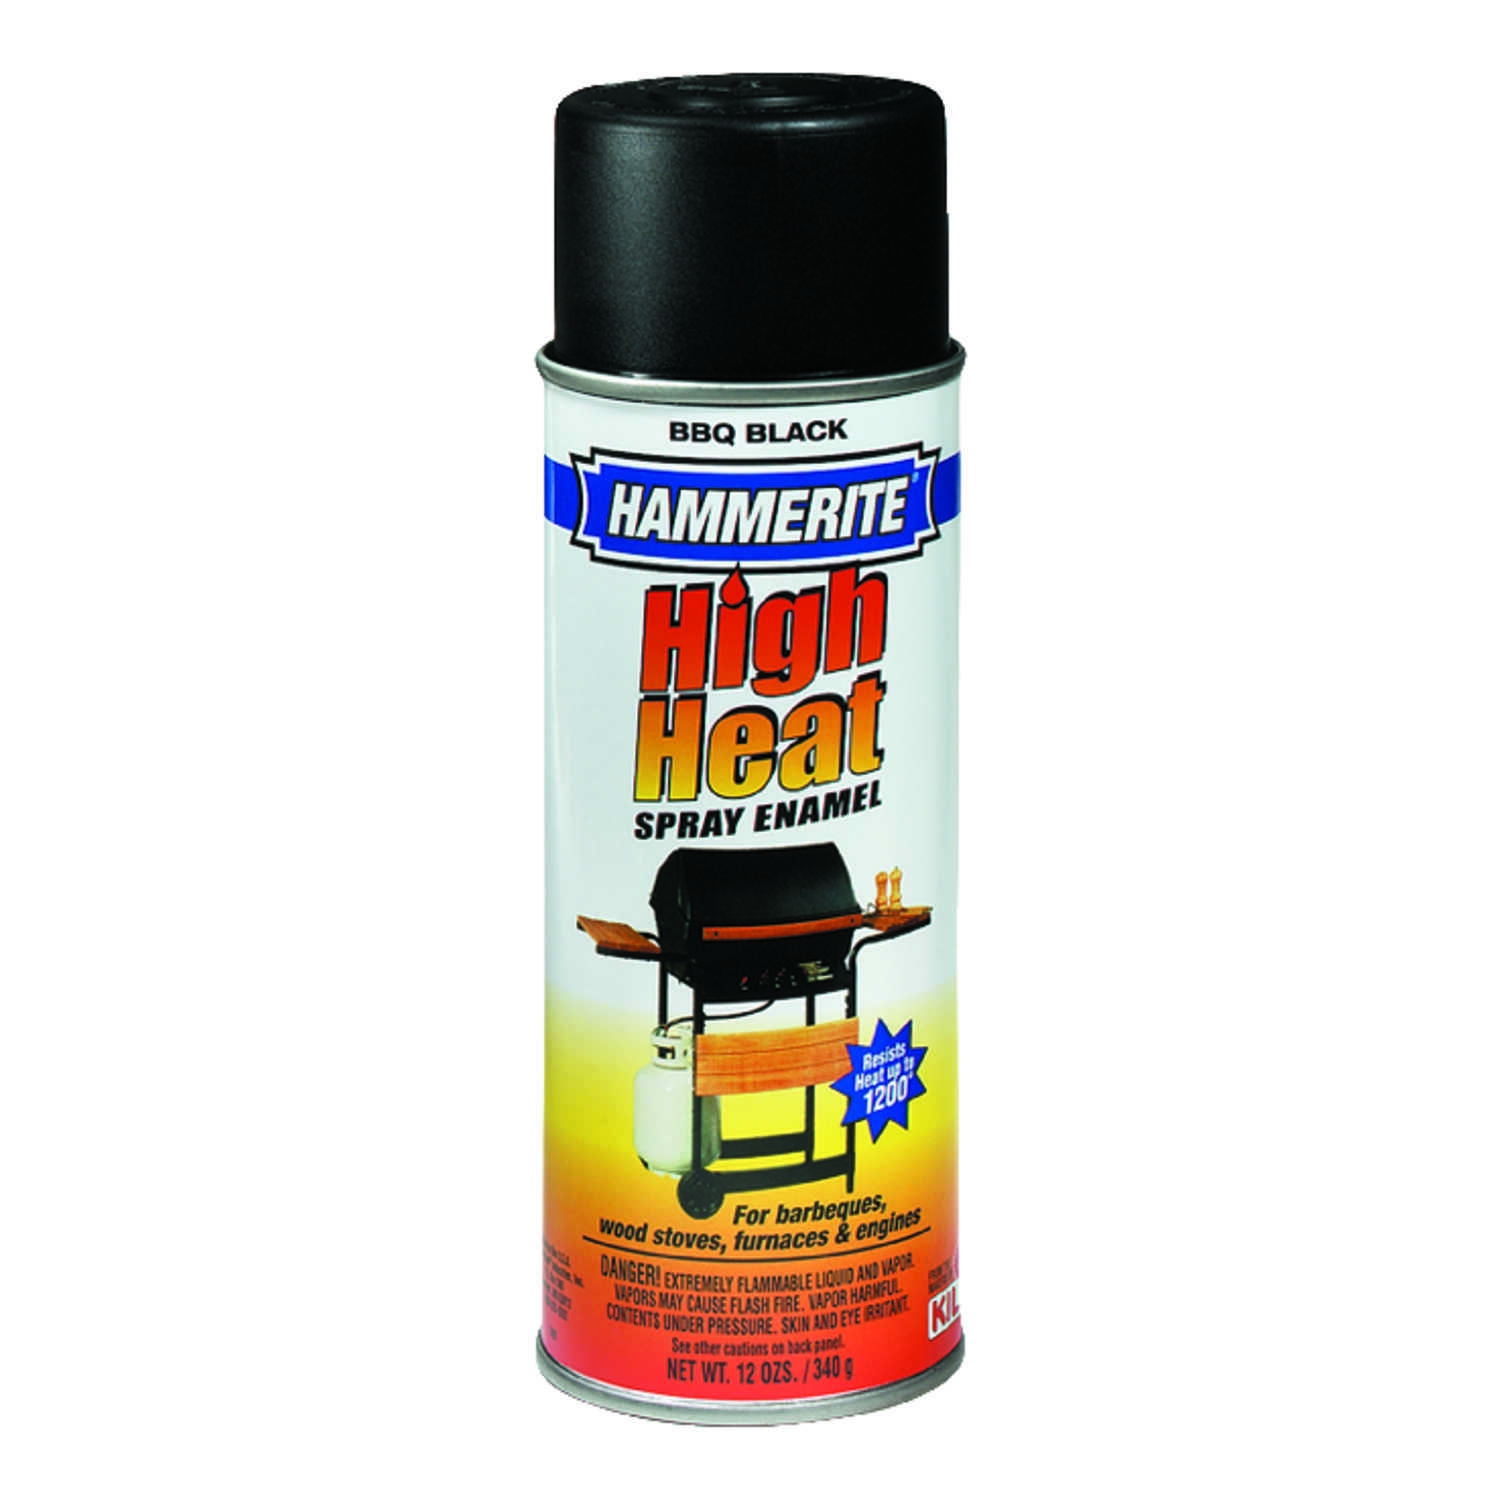 Hammerite  Rust Cap  Flat  Black  High Heat Enamel Spray  12 oz.